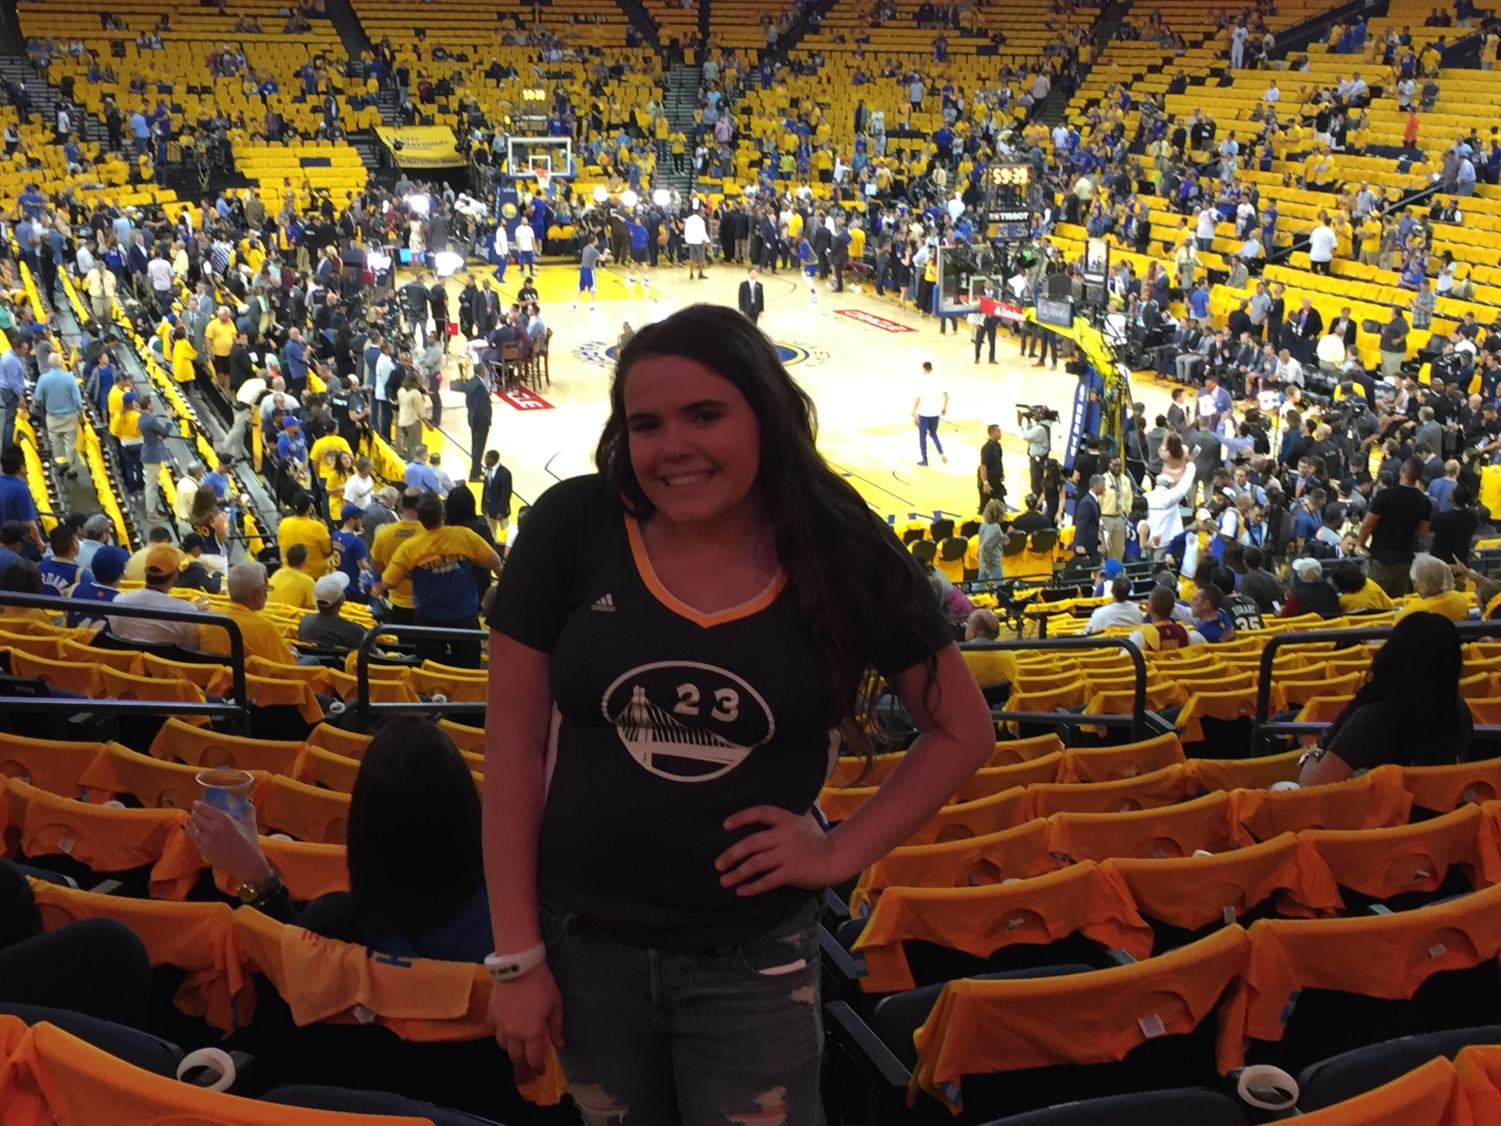 A photo of me (Lizzy Hall) at Oracle Arena, which was filled with fans dressed in blue and yellow during the 2017 NBA Finals.